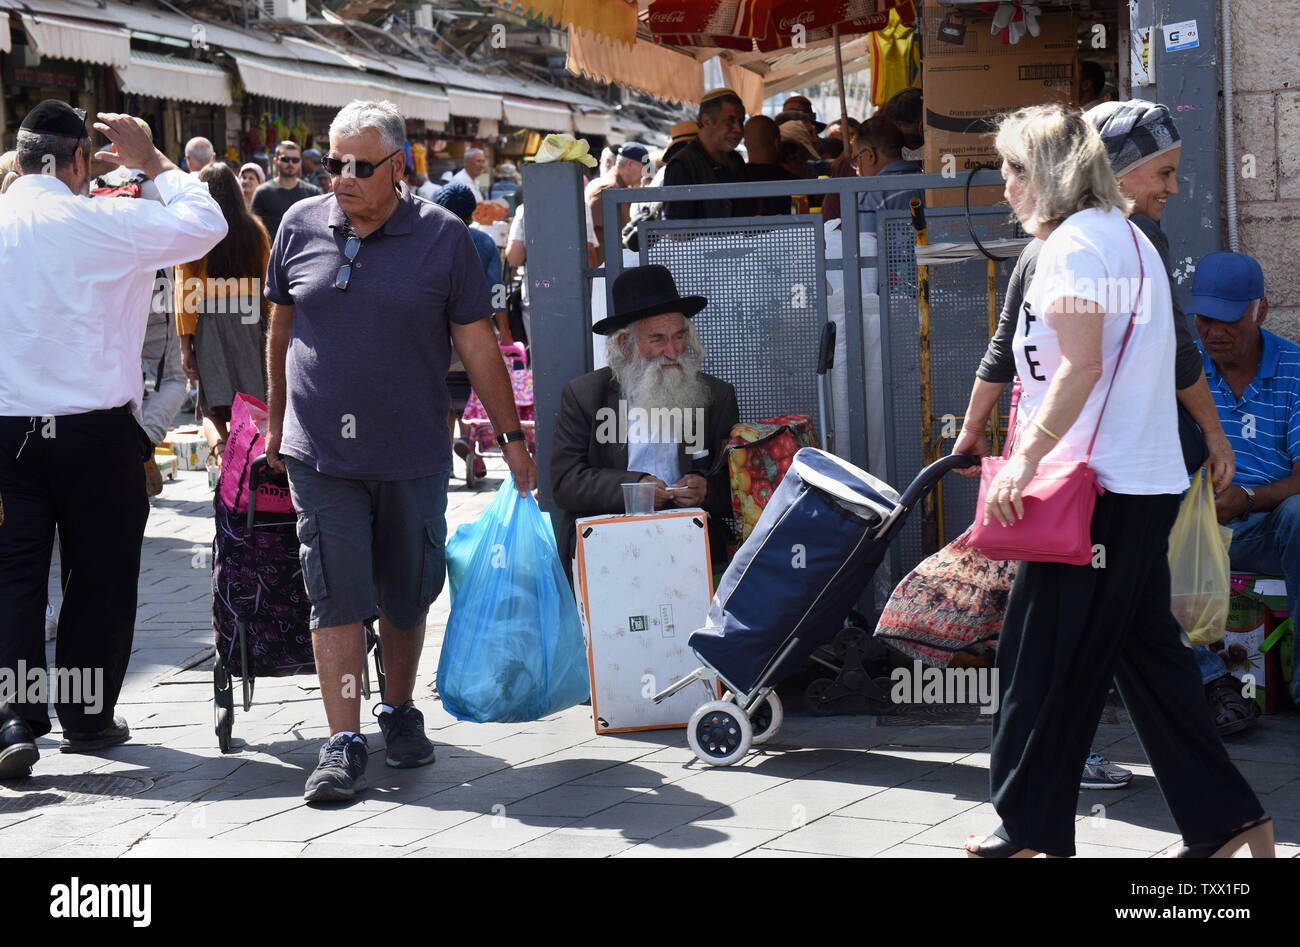 Israeli Jews shop in the Mahane Yehuda Market in Jerusalem, Israel,  September 5, 2018, in preparation for Rosh HaShana, the Jewish New Year, which starts at sundown on Sunday, September 9, 2018. Pomegranates, apples and honey are traditionally eaten during the Jewish High holidays which is the period of repentance in the Jewish calendar. The abundance of seeds in the pomegranate is associated with the 613 commandments in the Torah and serve as symbols of righteousness and fruitfulness.  Photo by Debbie Hill/UPI - Stock Image